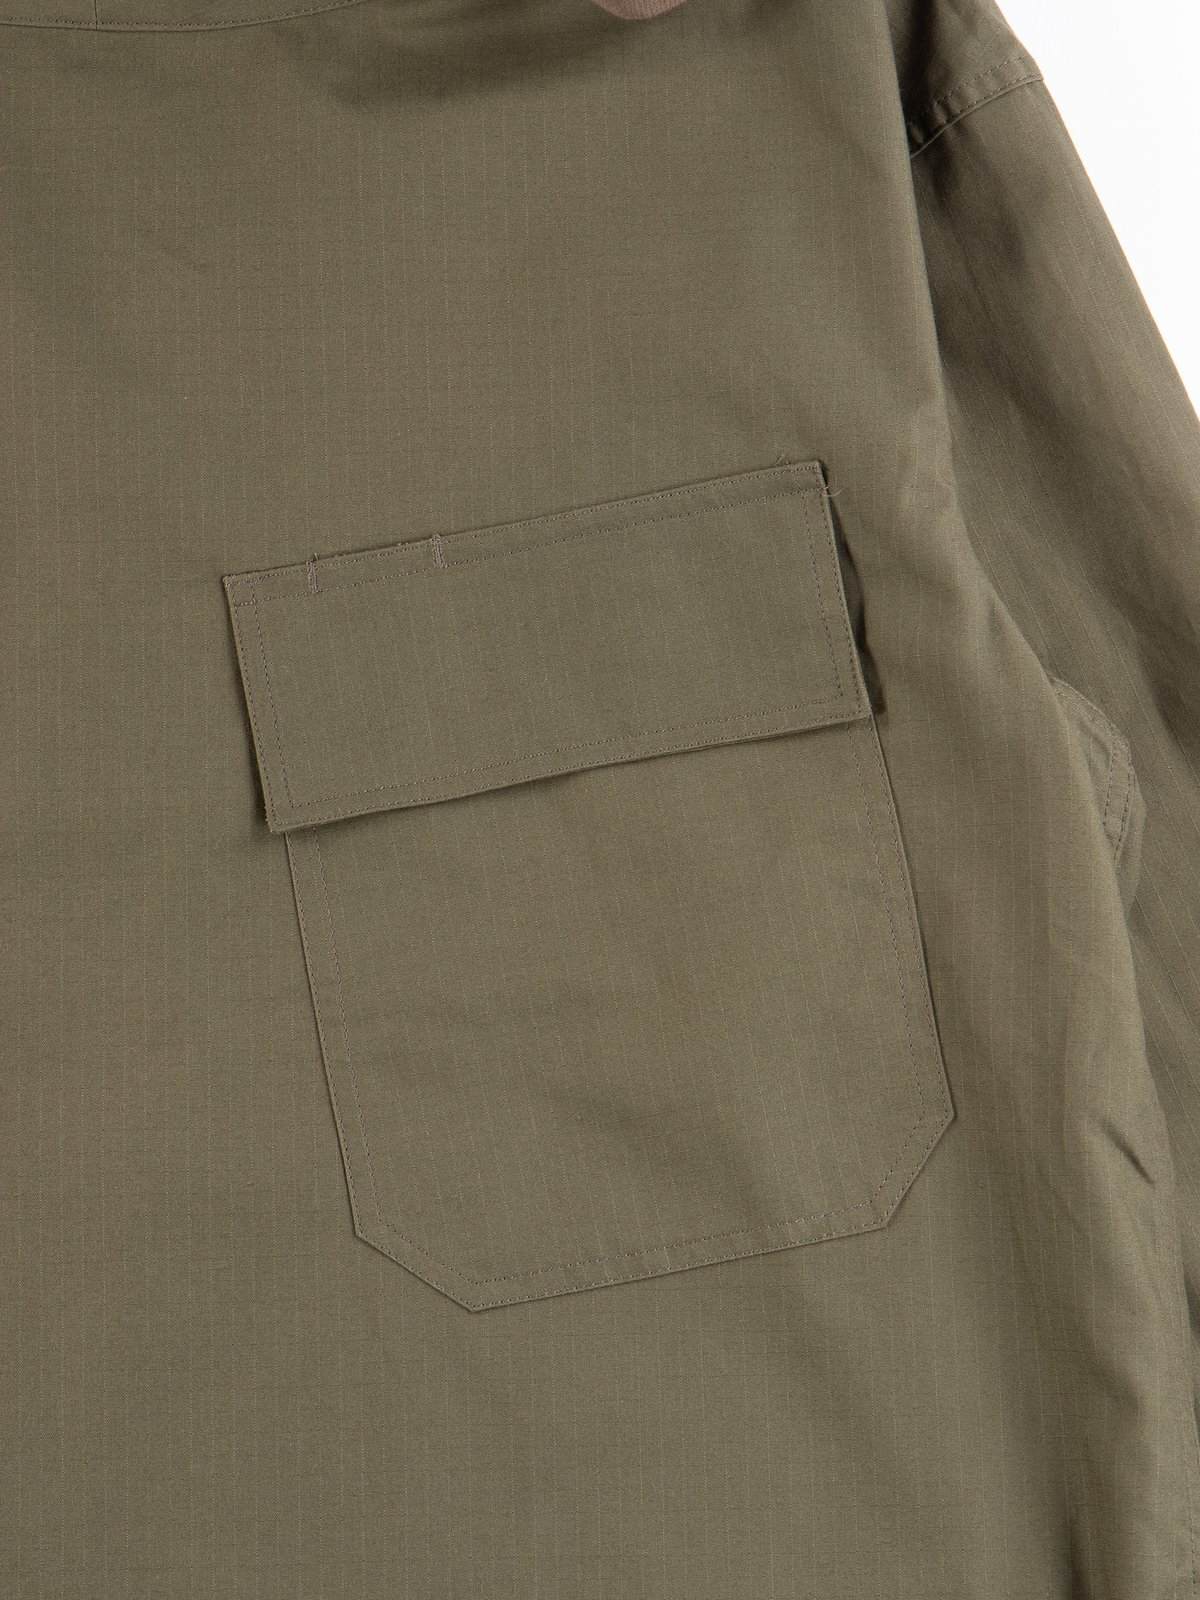 Olive Army Ripstop Salvage Parka - Image 4